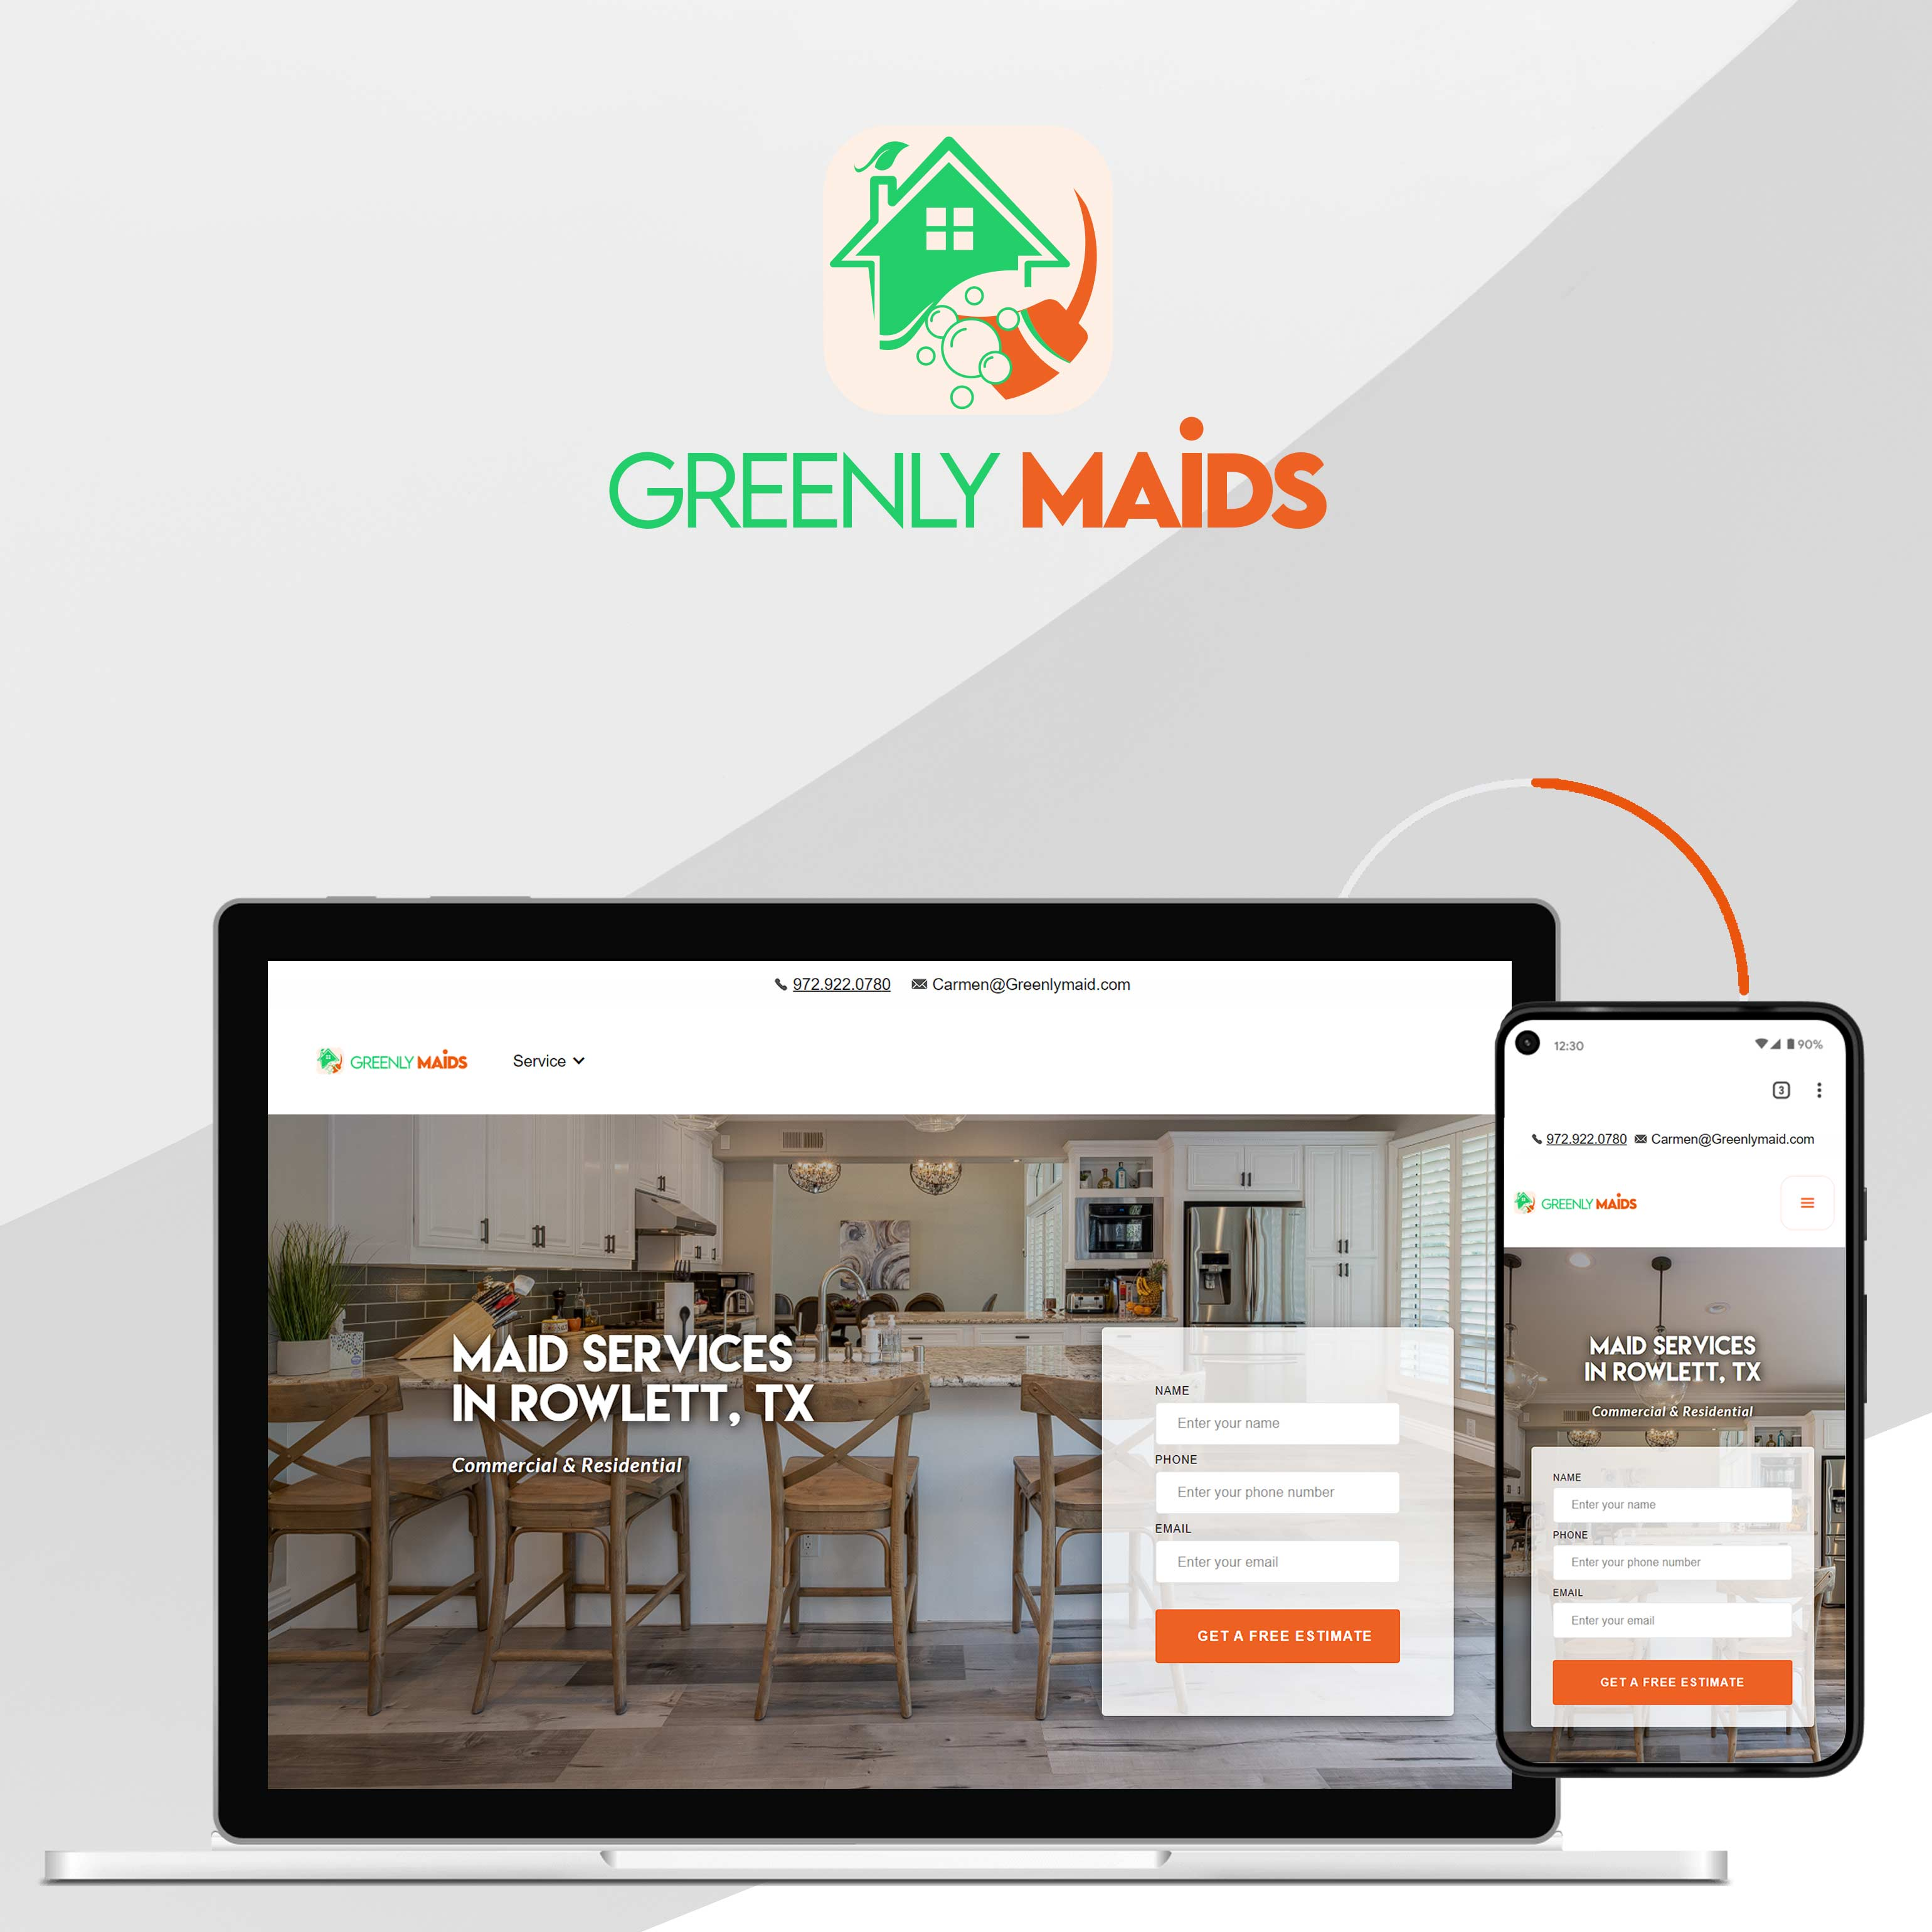 Greenly maids